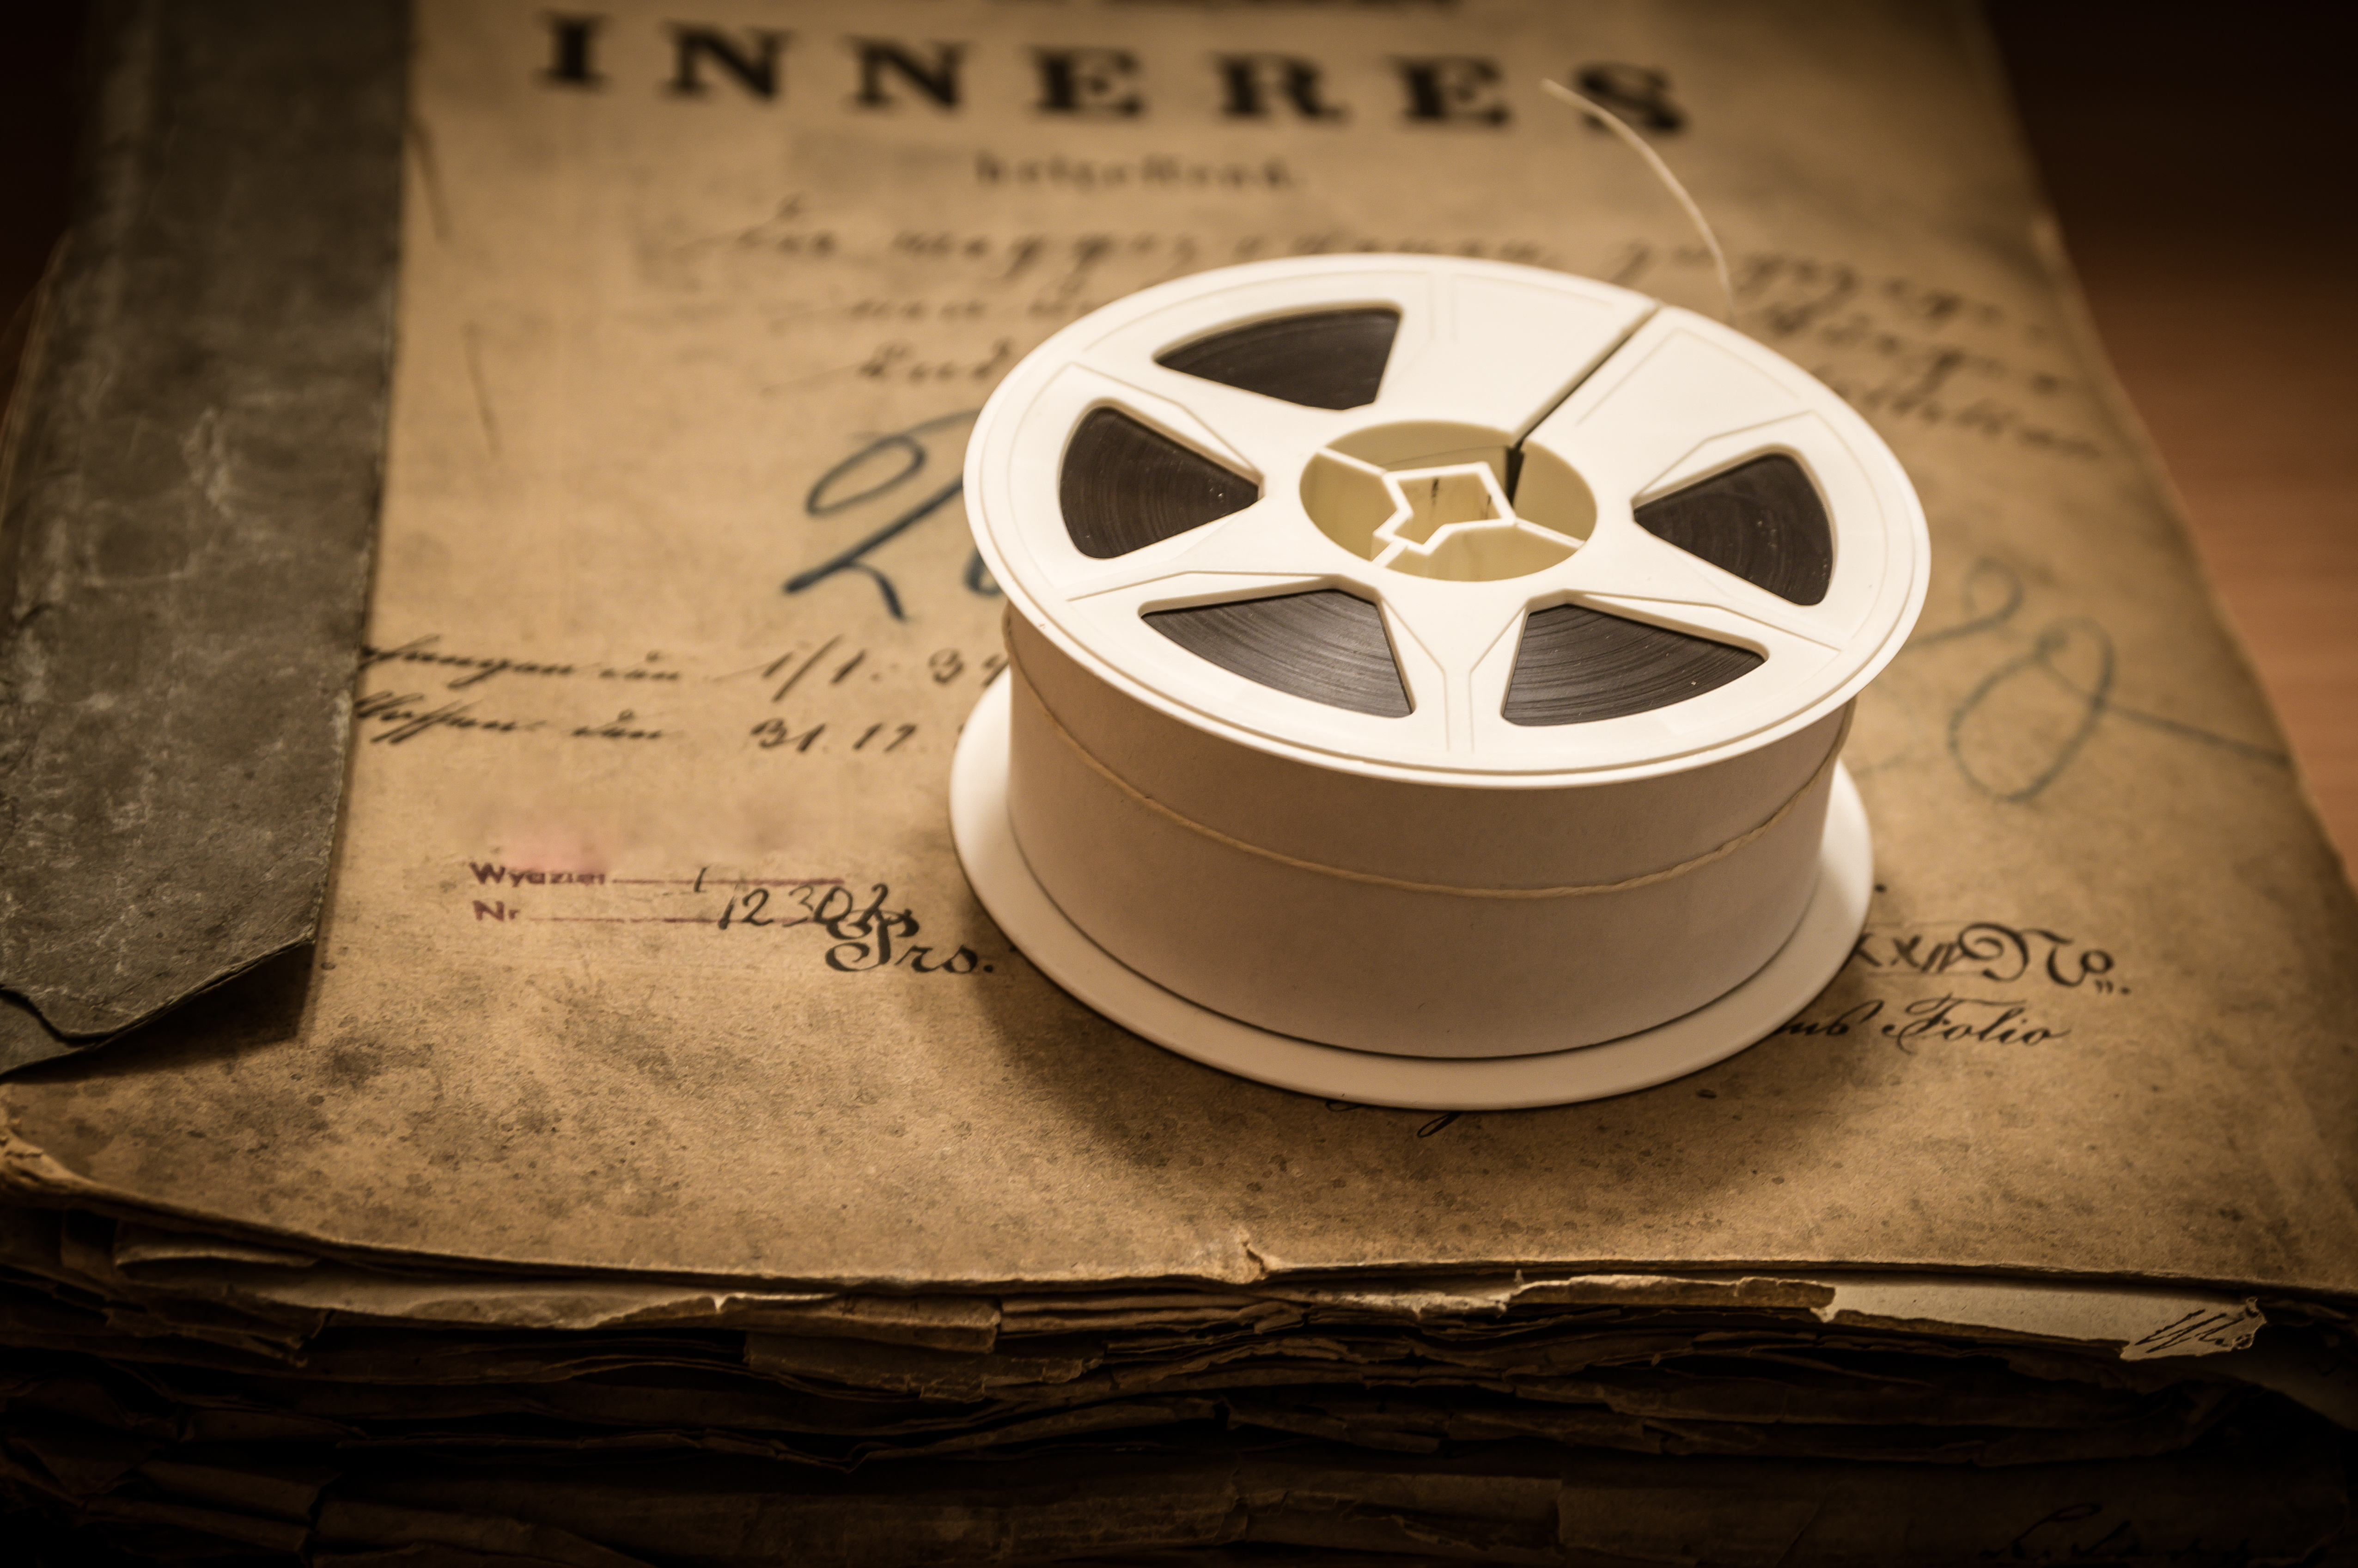 FamilySearch completes initiative to digitize its 2.4 million rolls of microfilm for free online access.